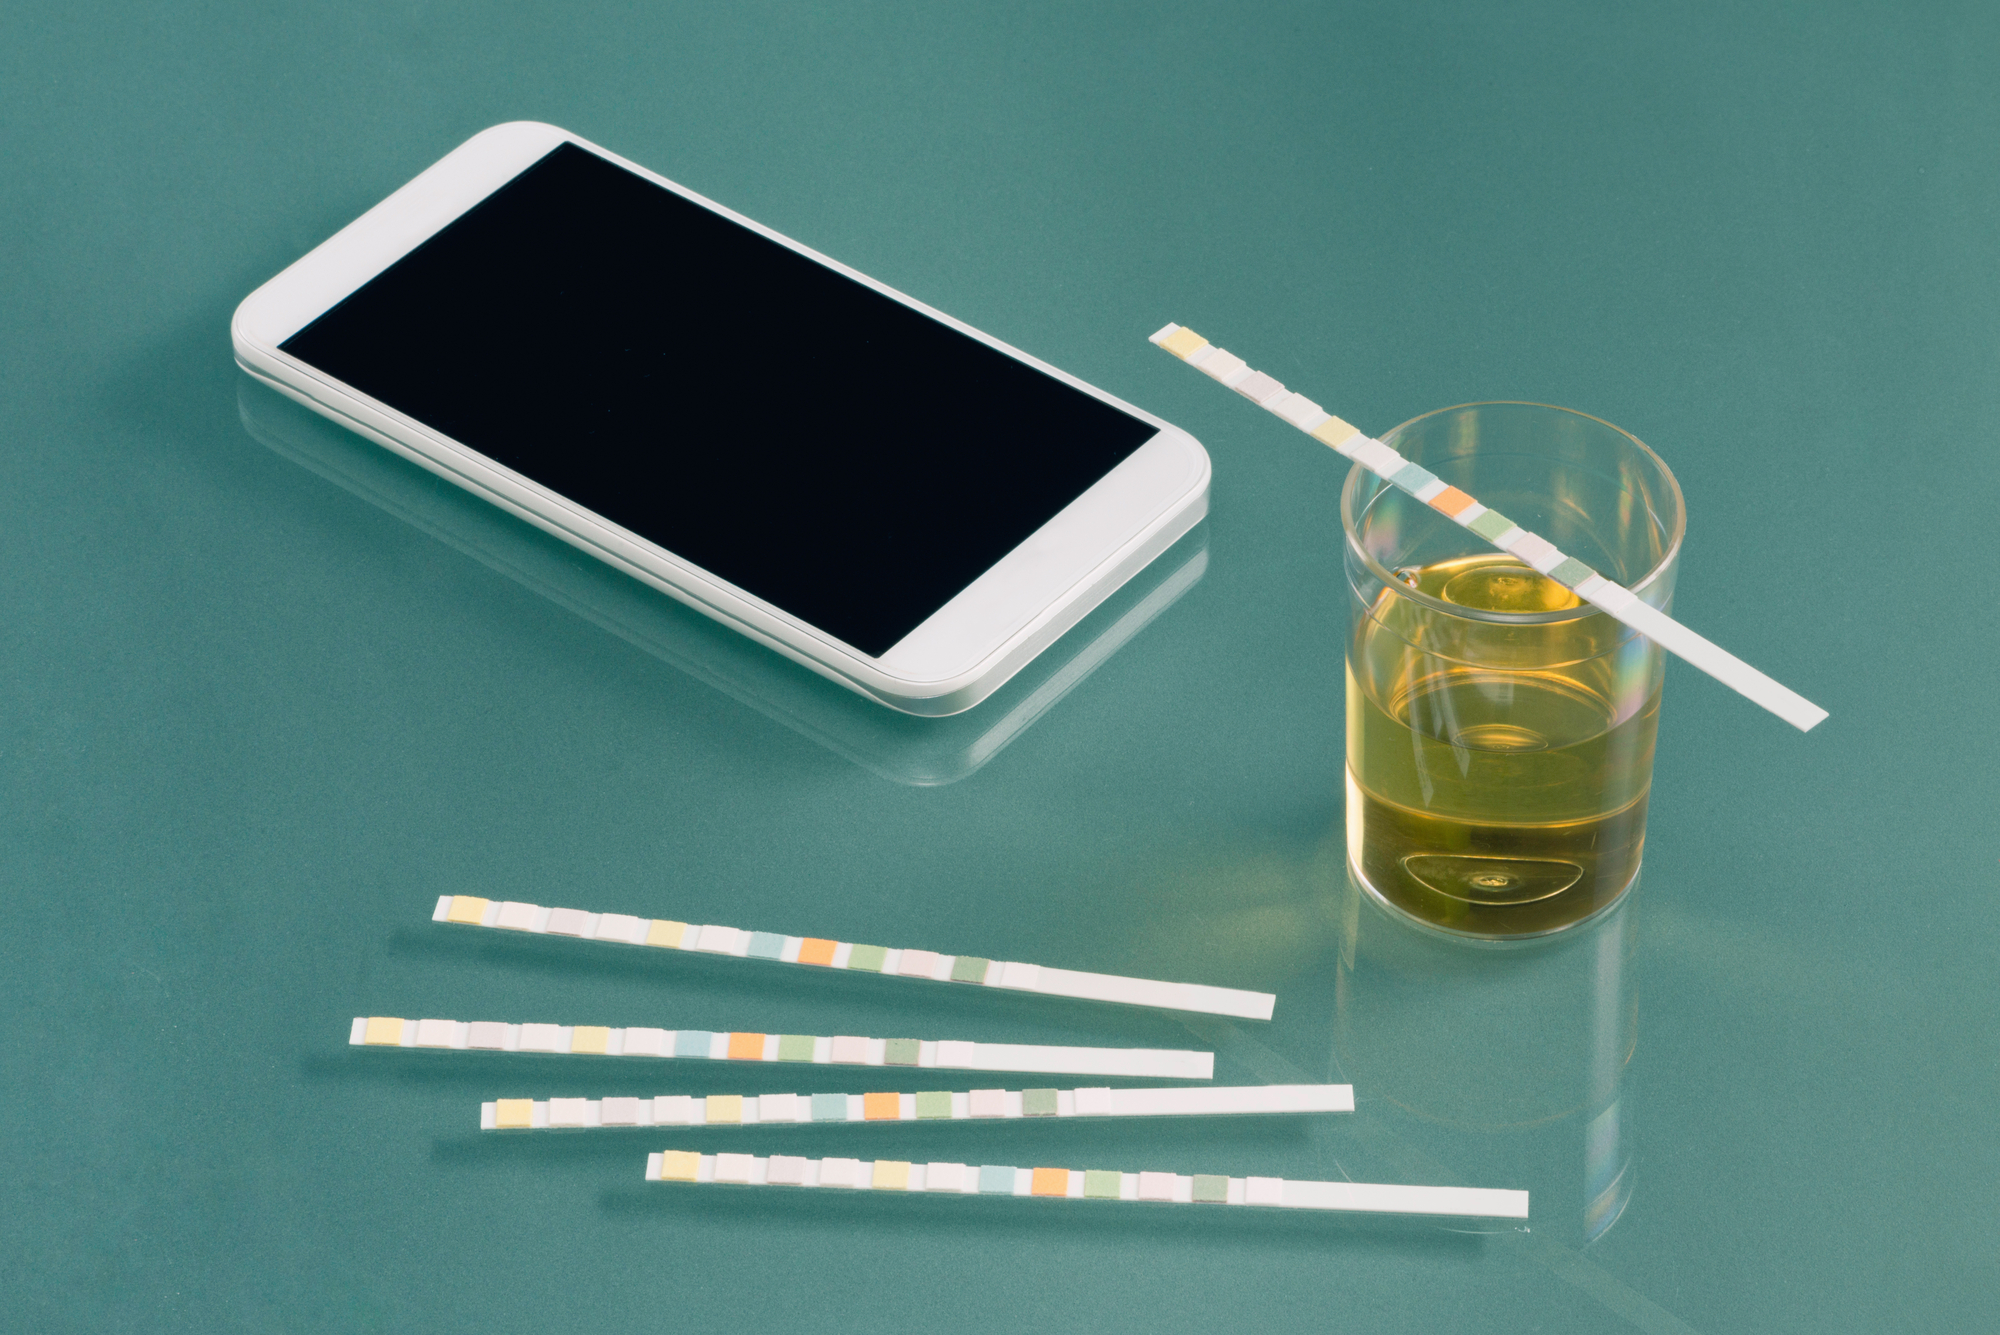 A smartphone sitting on a green tabletop next to a small glass containing a urine sample, with paper drug test strips laying nearby.